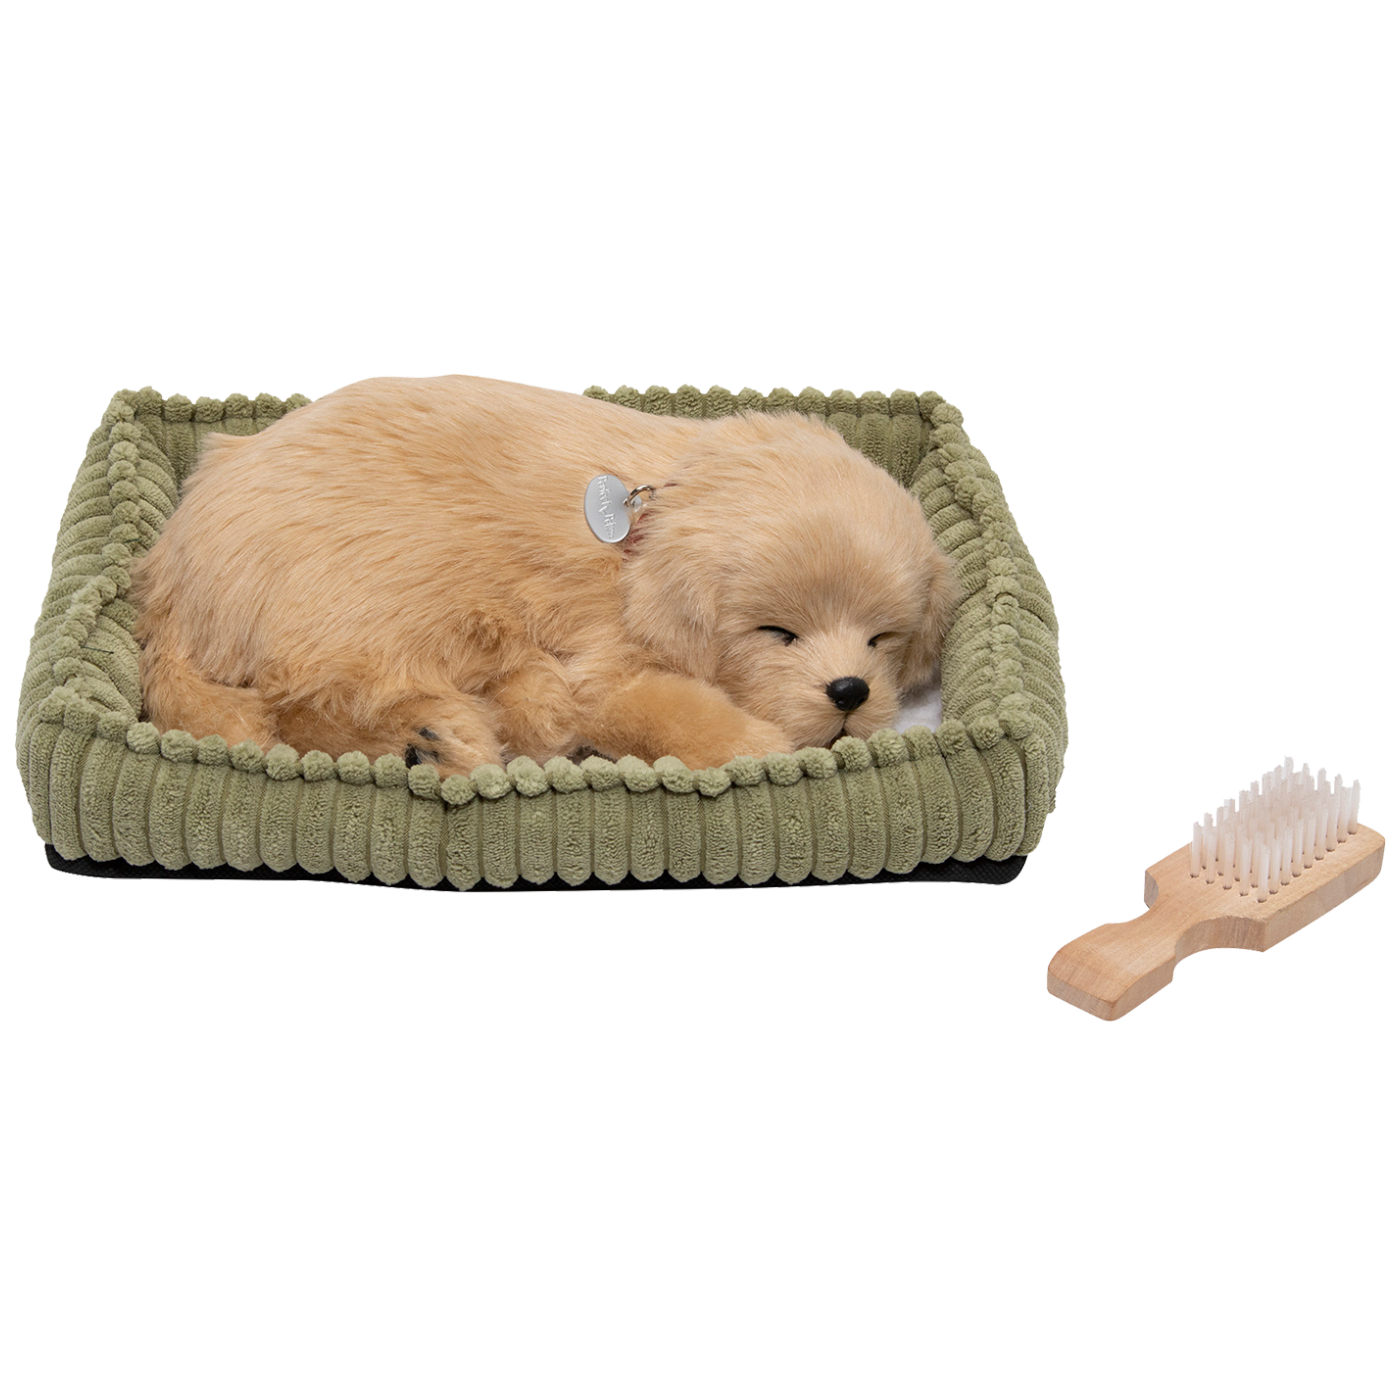 home - PP Golden Retriever